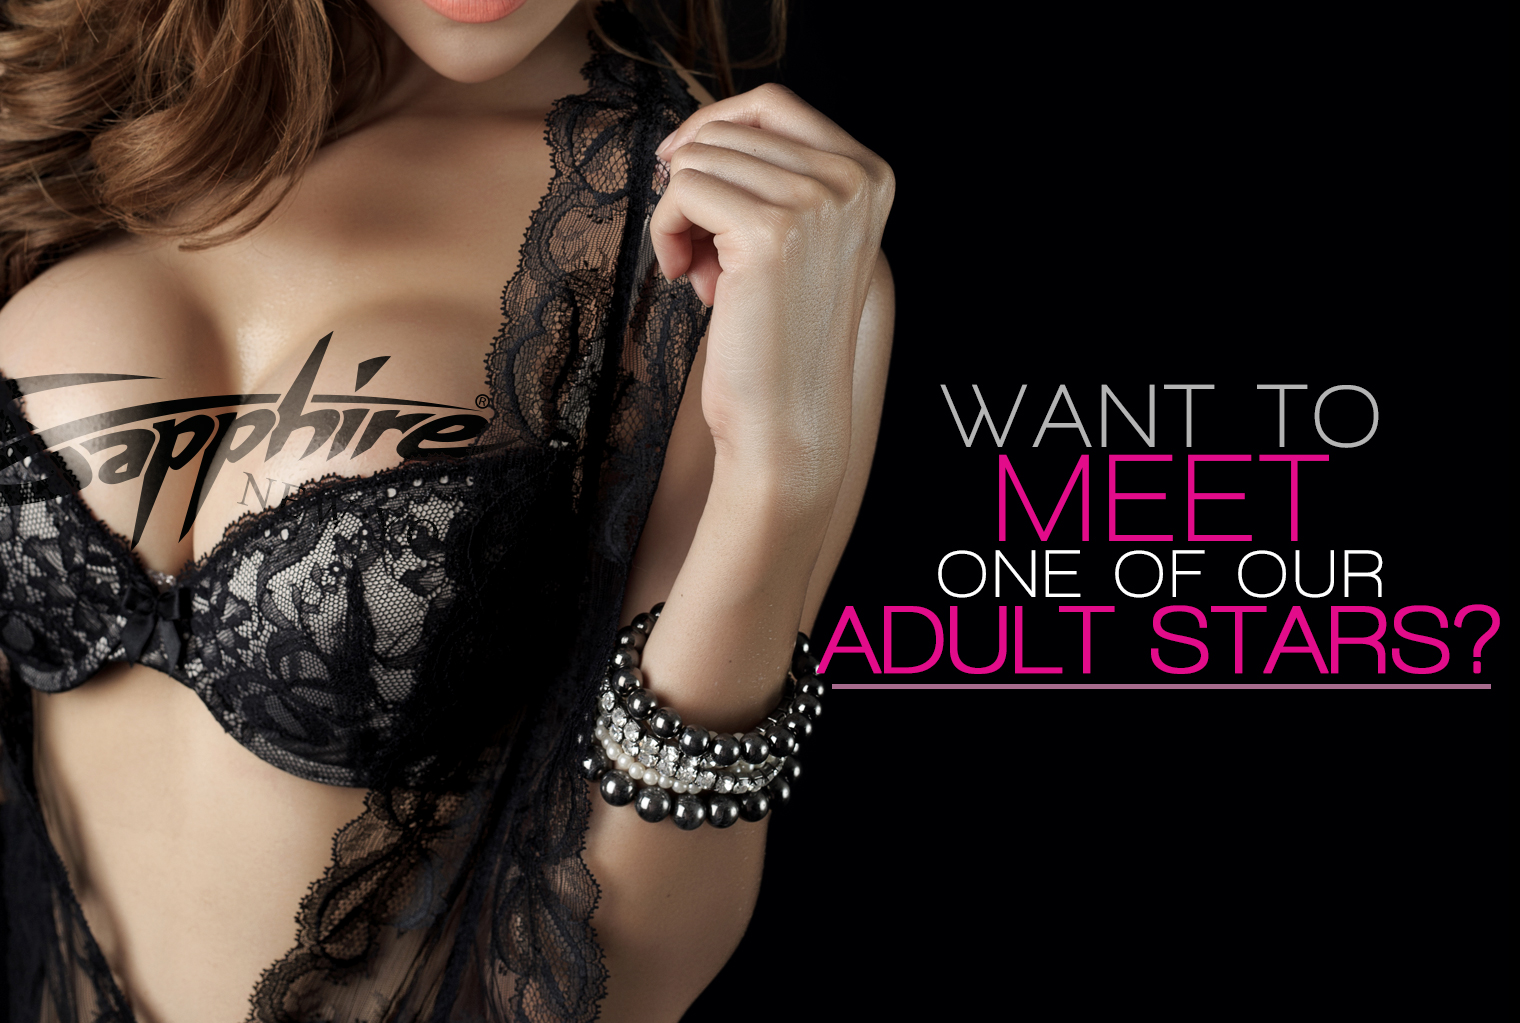 Book your Sapphire Adult Star Package